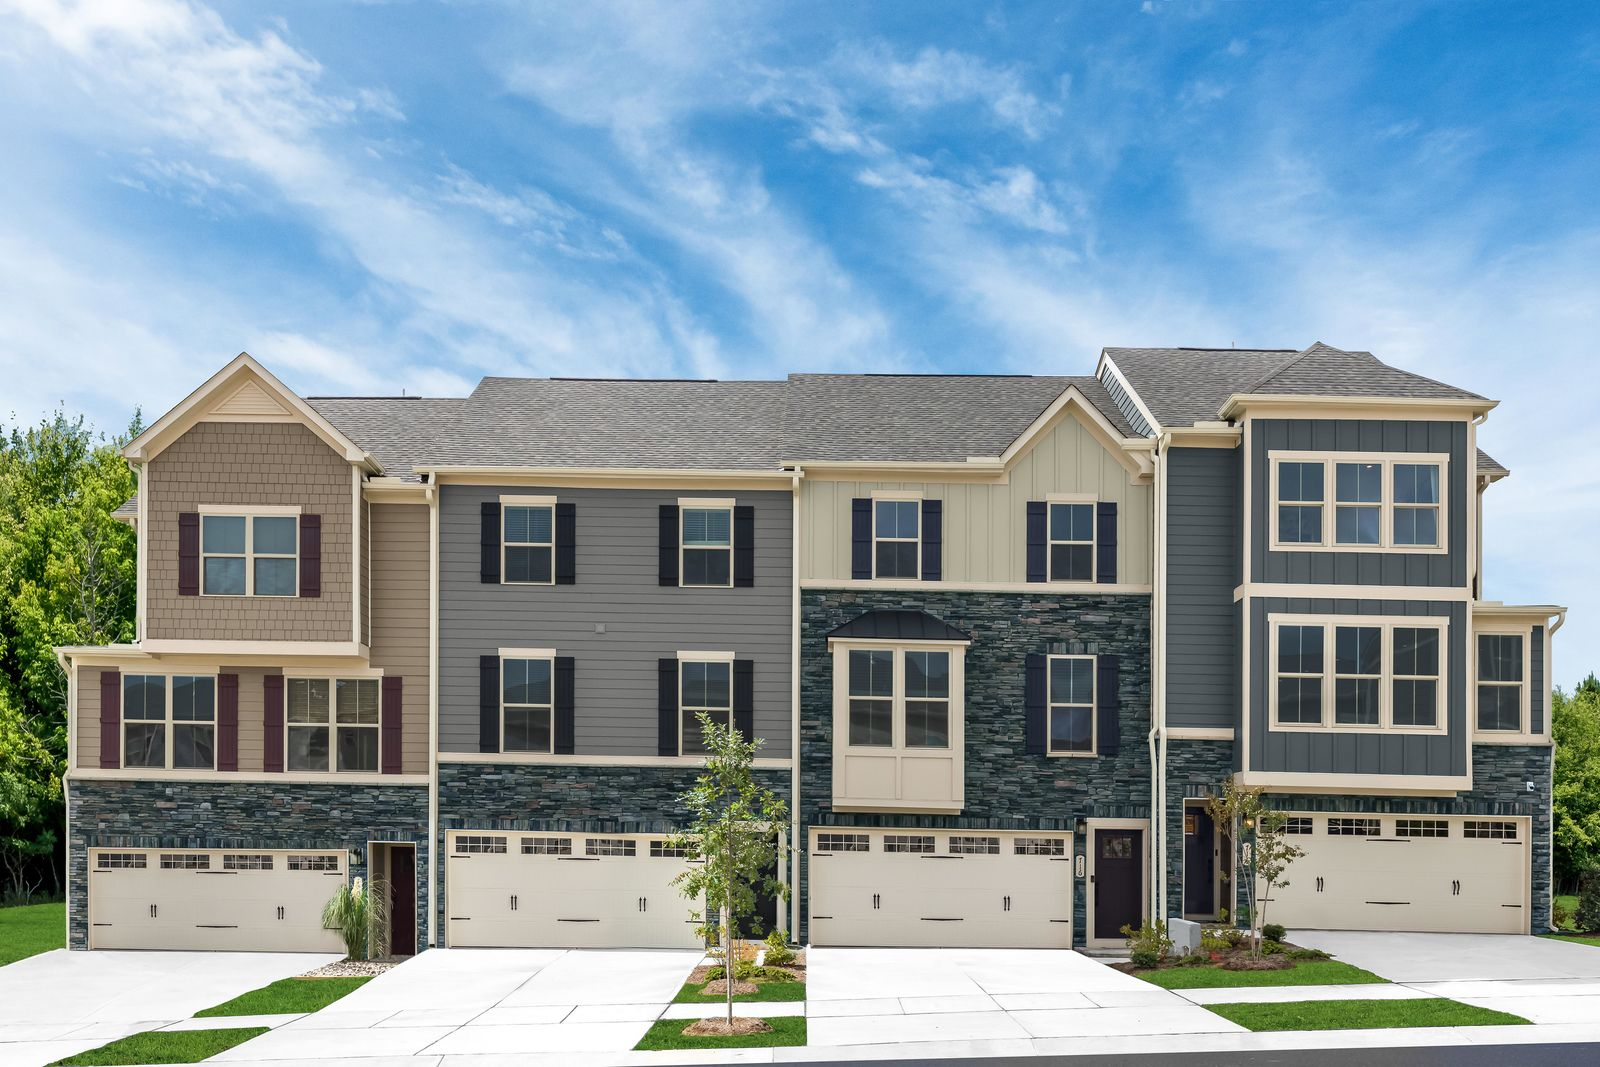 Luxury townhomes near Verdae with space and features you expect. From the low $300s.:Up to 4 bedrooms, a flex room, and a covered porch with fireplace.Join the VIP List for the first chance to own at the lowest price available!